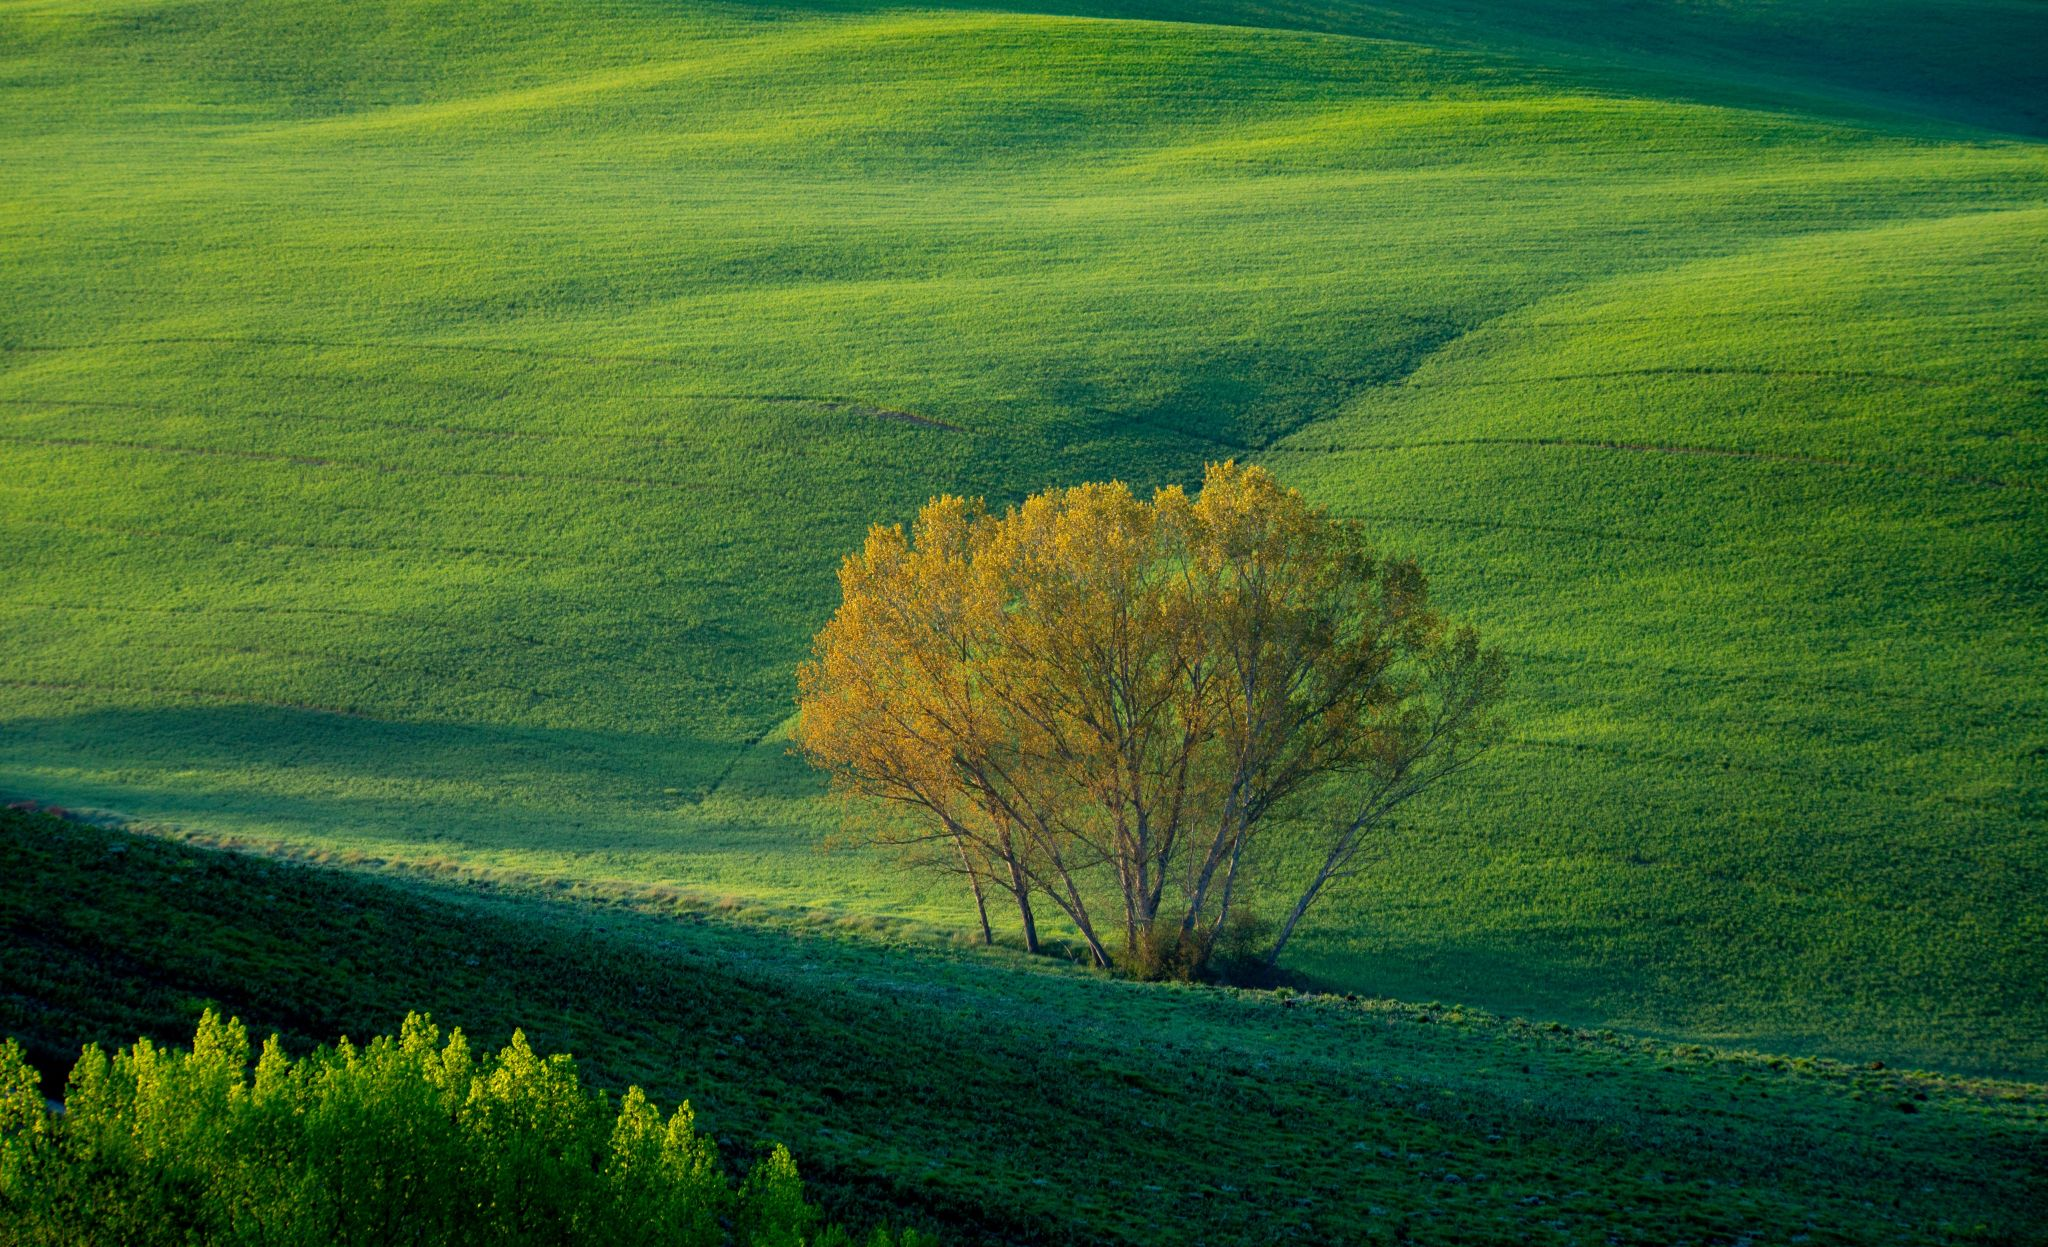 trees in a valley, Italy